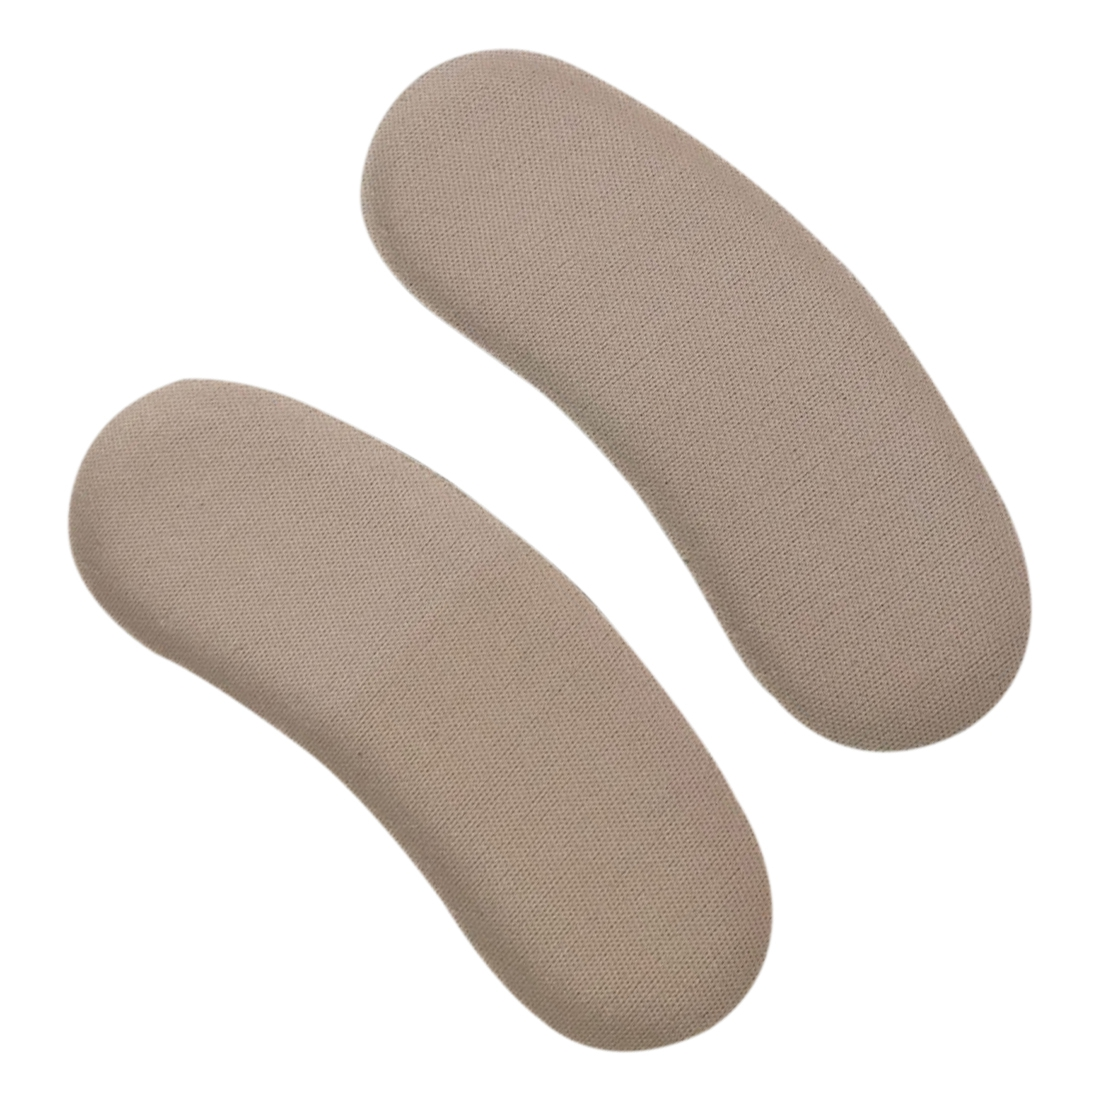 2 Pair Spongy Shoe Heel Inserts Strong Sticky Insoles Pads Cushion Grips Khaki